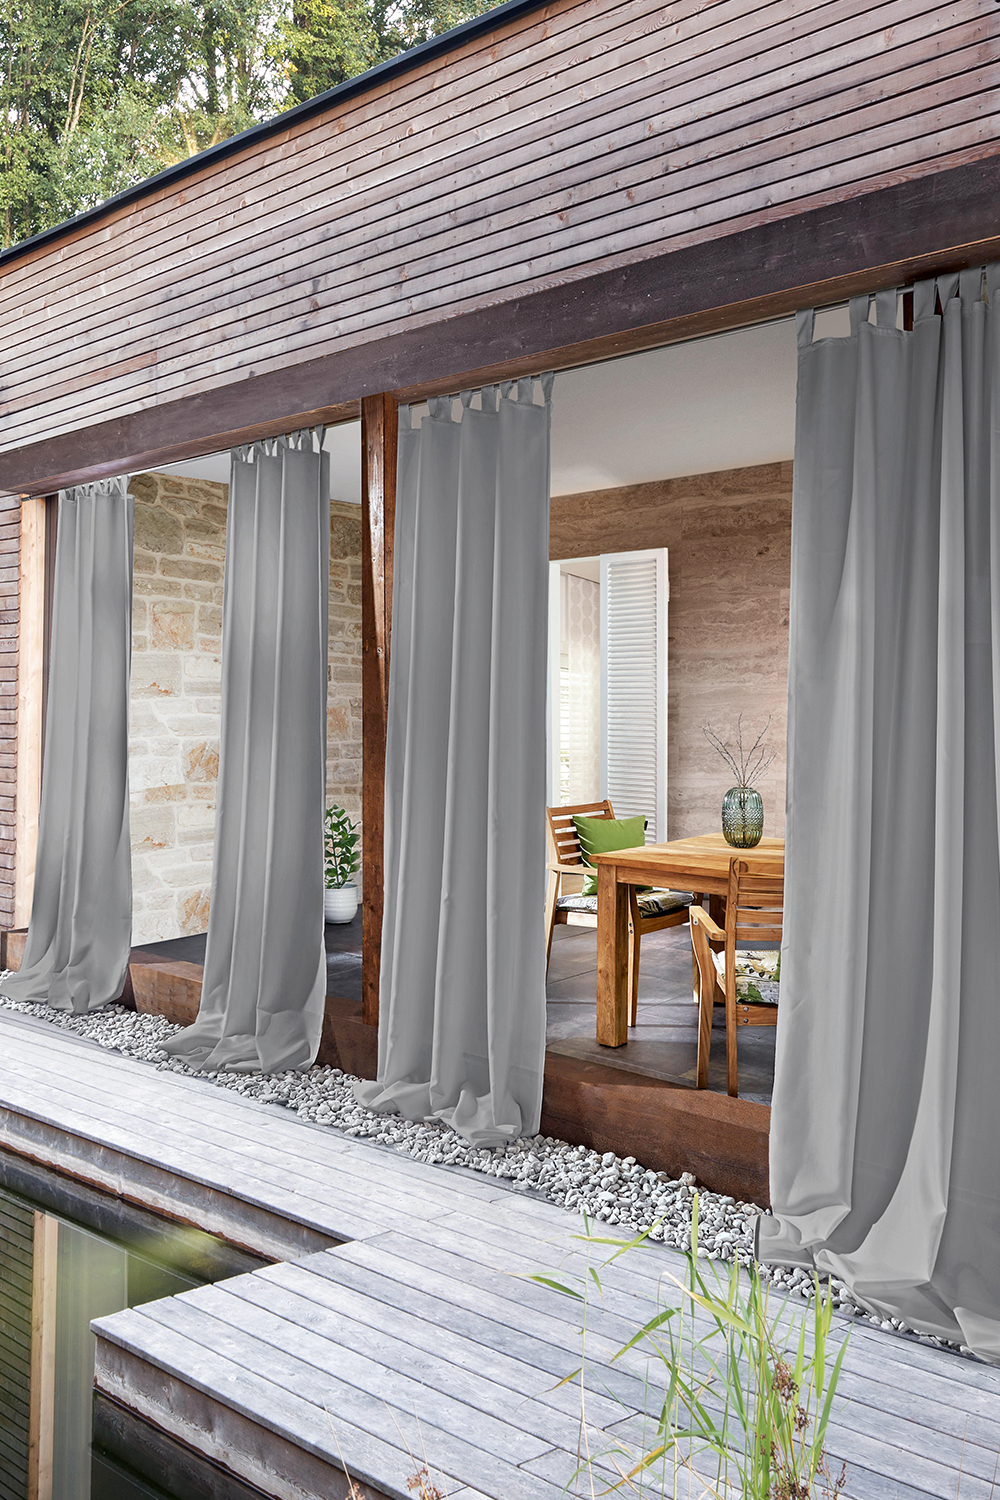 Outdoor Zavjese In 2020 Patio Shade Porch Curtains Outdoor Blinds Patios